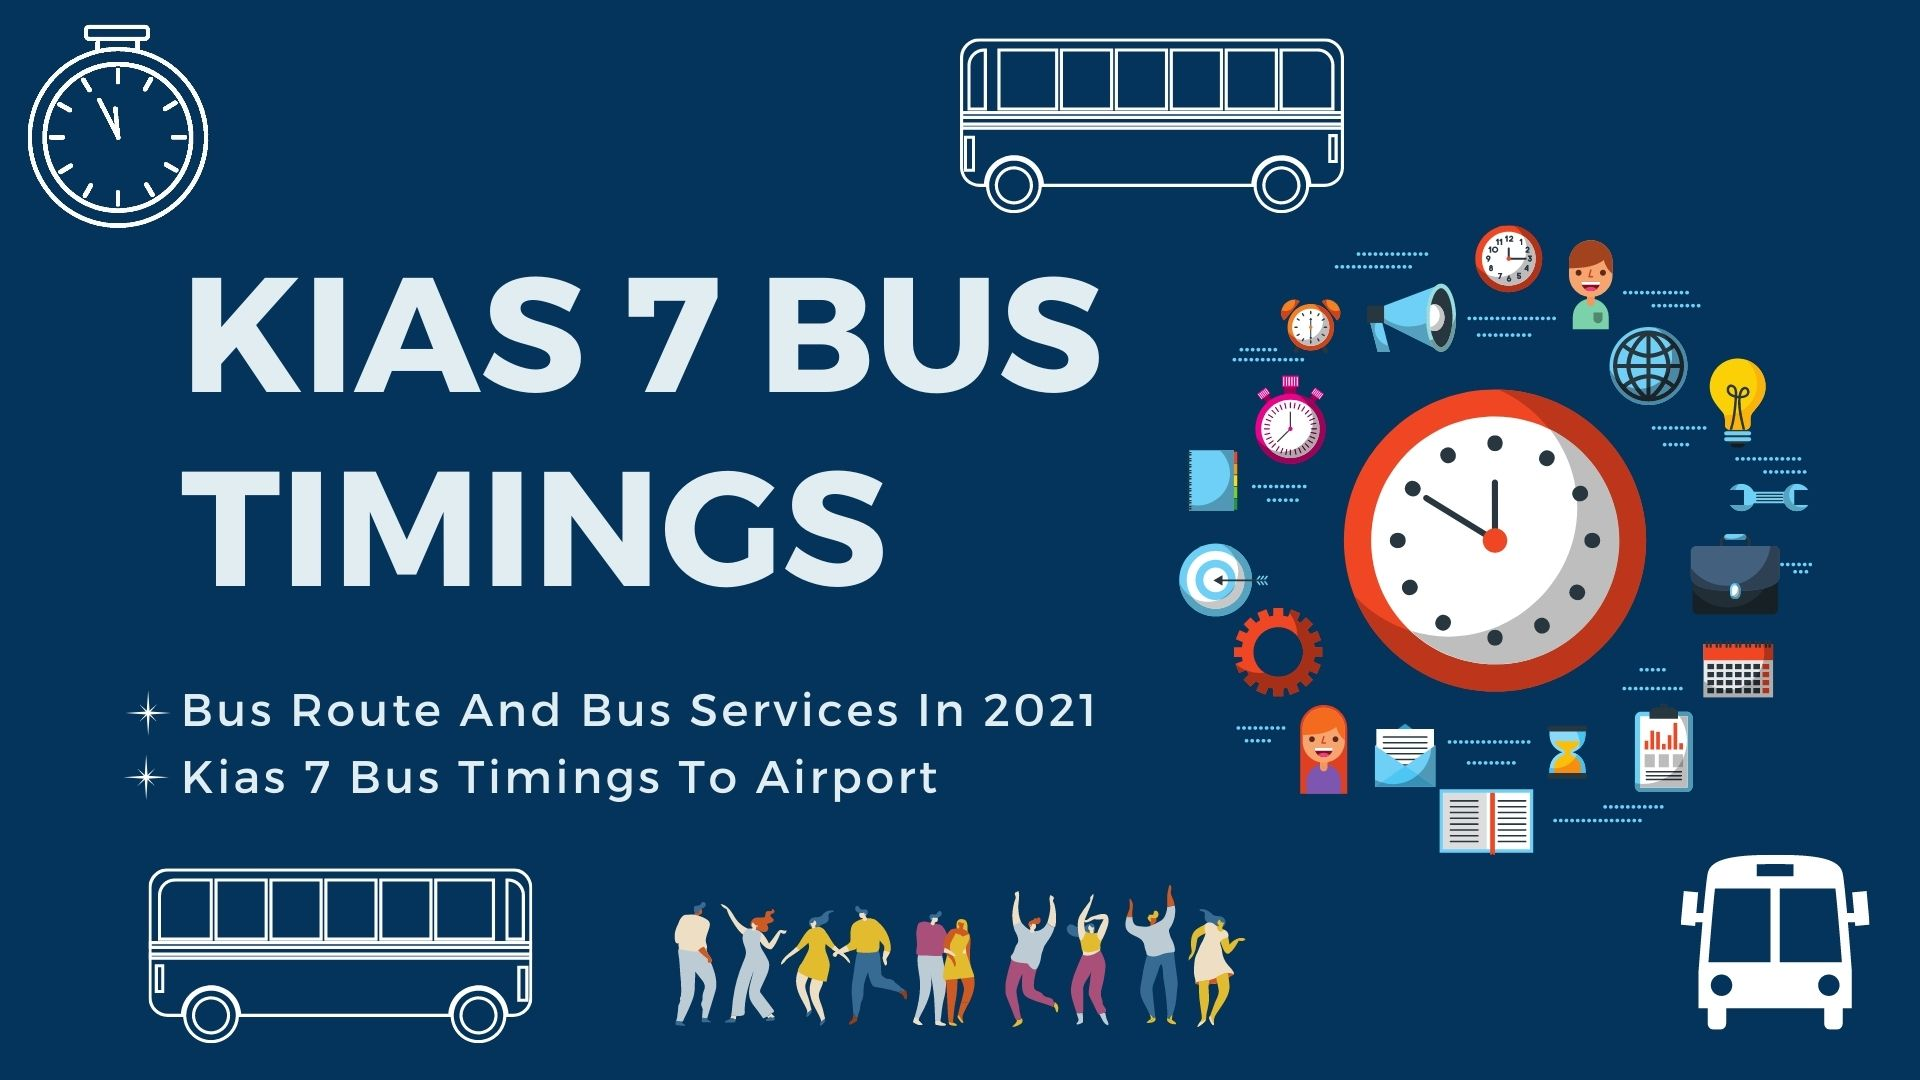 Kias-7-bus-timing